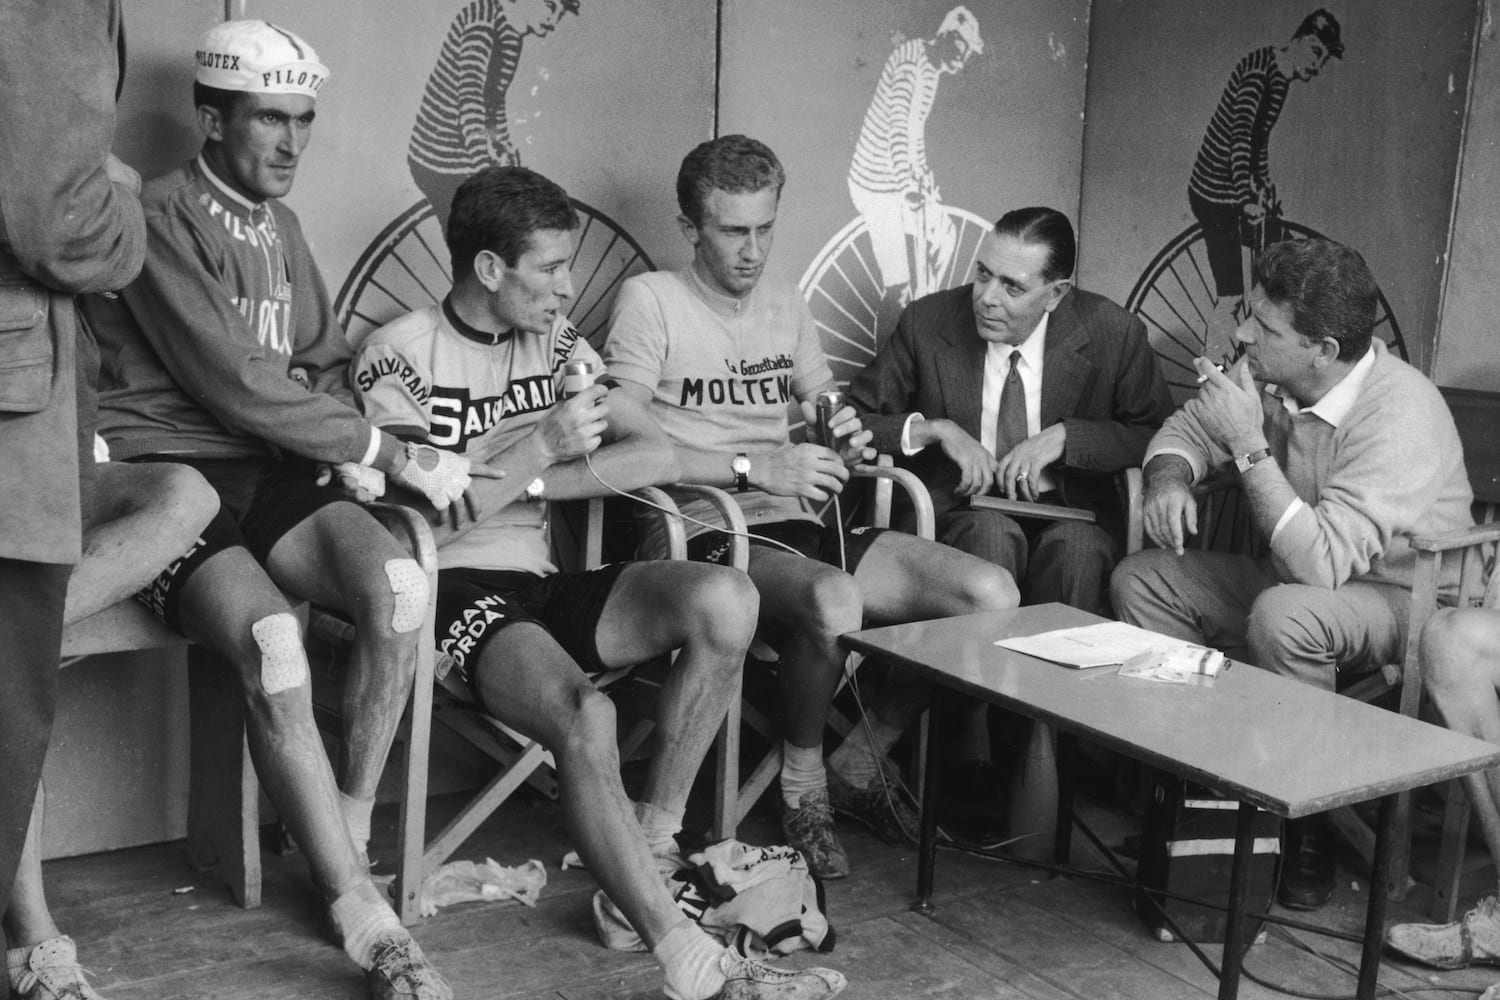 From left to right, Italian competitors Franco Bitossi, Felice Gimondi and Gianni Motta and interviewed by journalists Luigi Chierici and Sergio Zavoli during the 1966 Giro d'Italia (Tour of Italy). Motta was the overall winner of the race. (Photo by Keystone/Hulton Archive/Getty Images)